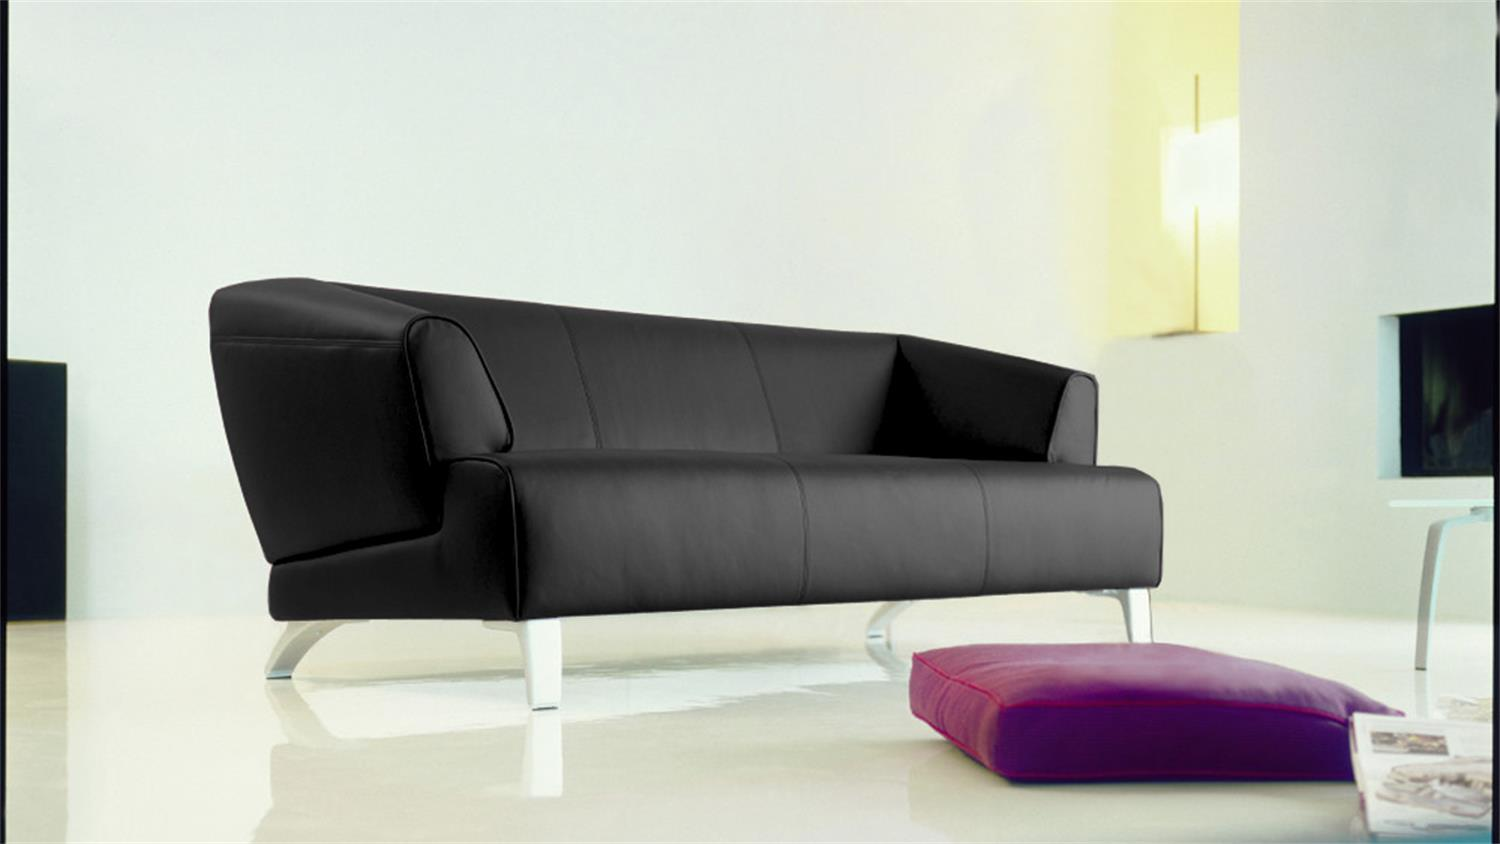 rolf benz sofabank sob 2300 leder schwarz 3 sitzer 195 cm breit. Black Bedroom Furniture Sets. Home Design Ideas